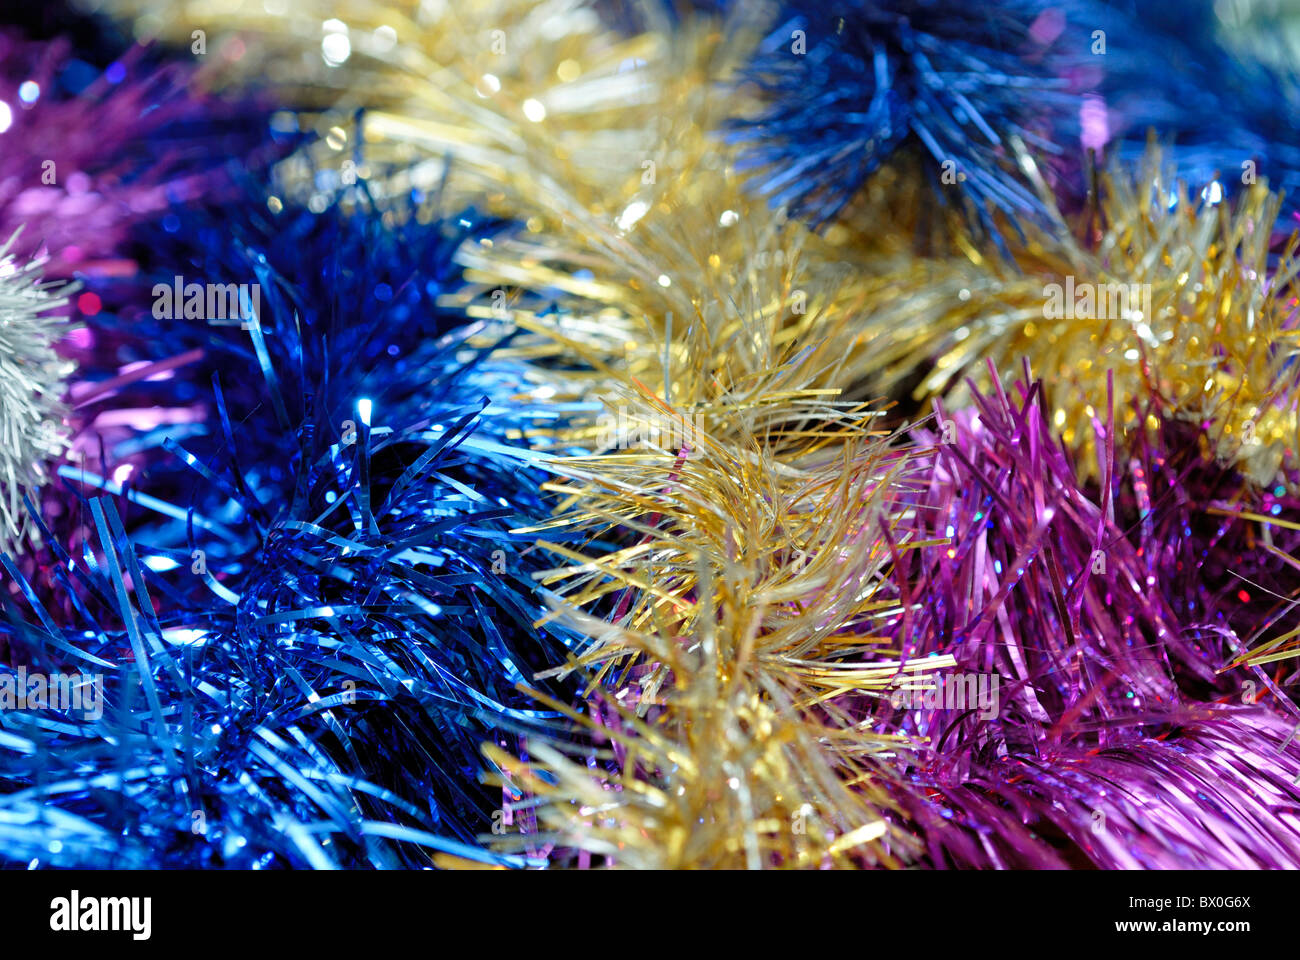 Multicolored tinsel background - Stock Image